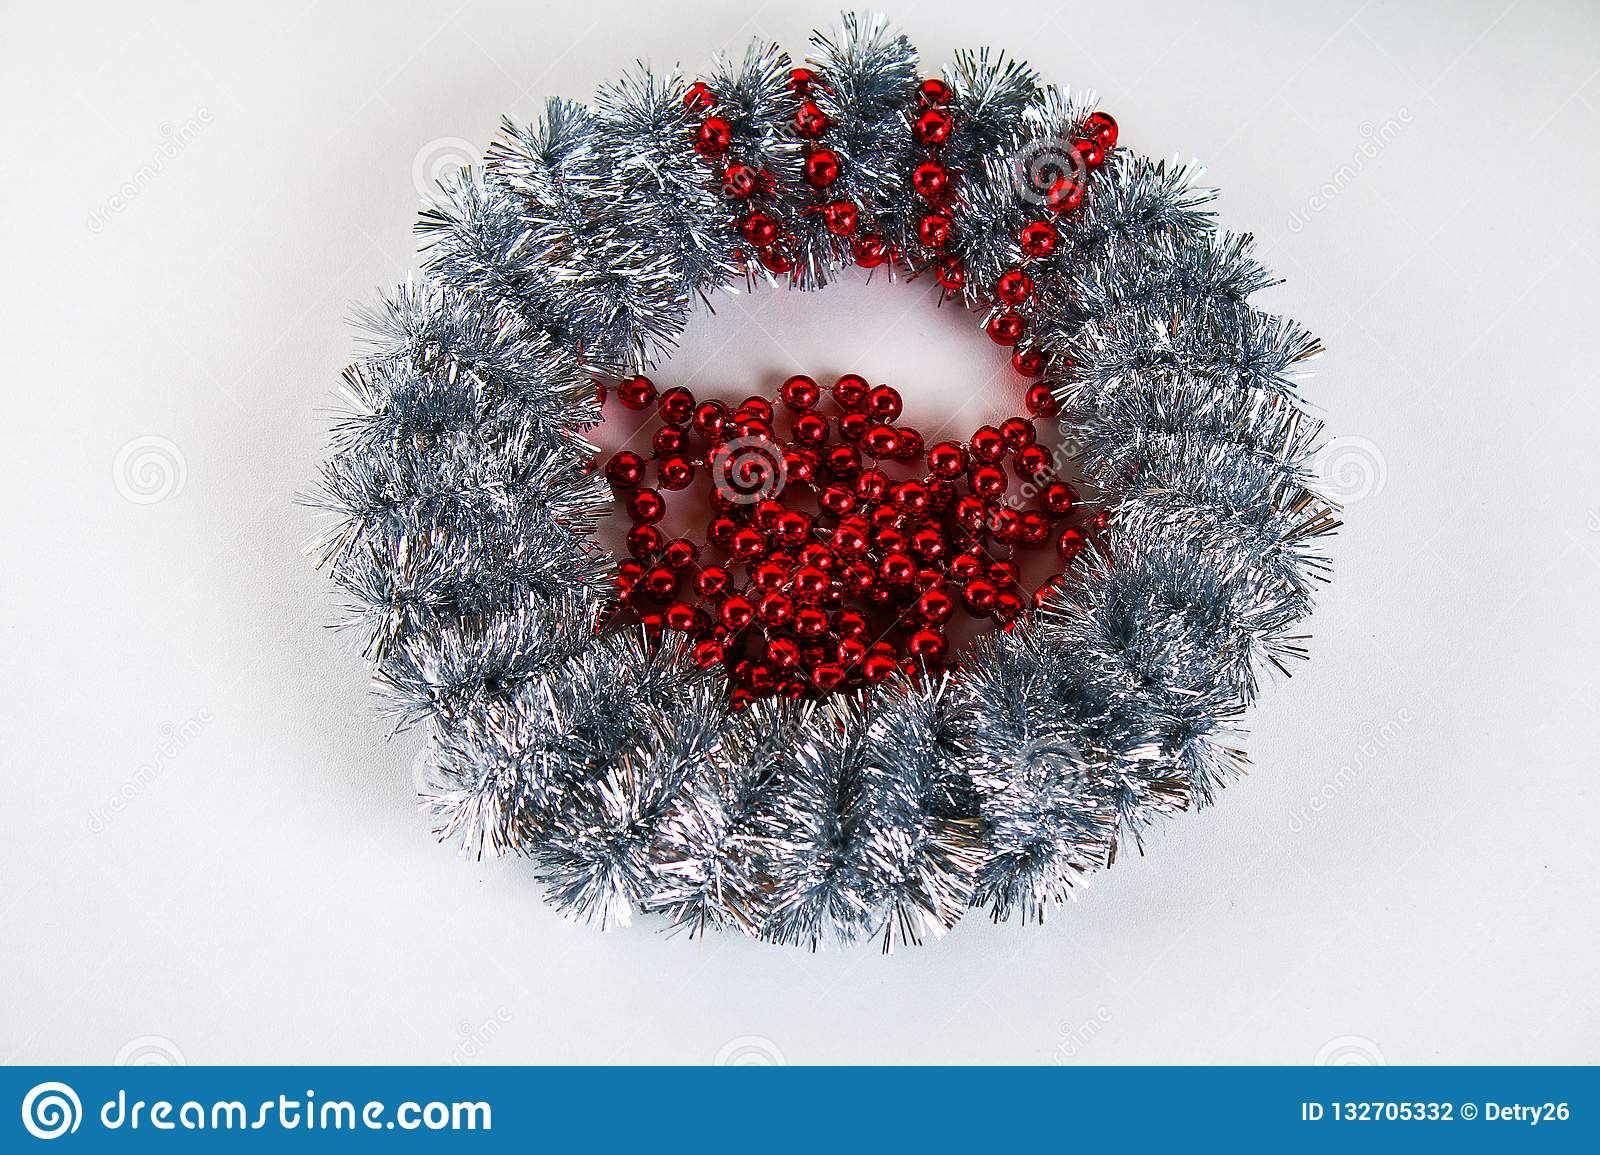 Diy Christmas wreath. Guide on the photo how to make a Christmas wreath with your own hands from a cardboard plate, tinsel, beads